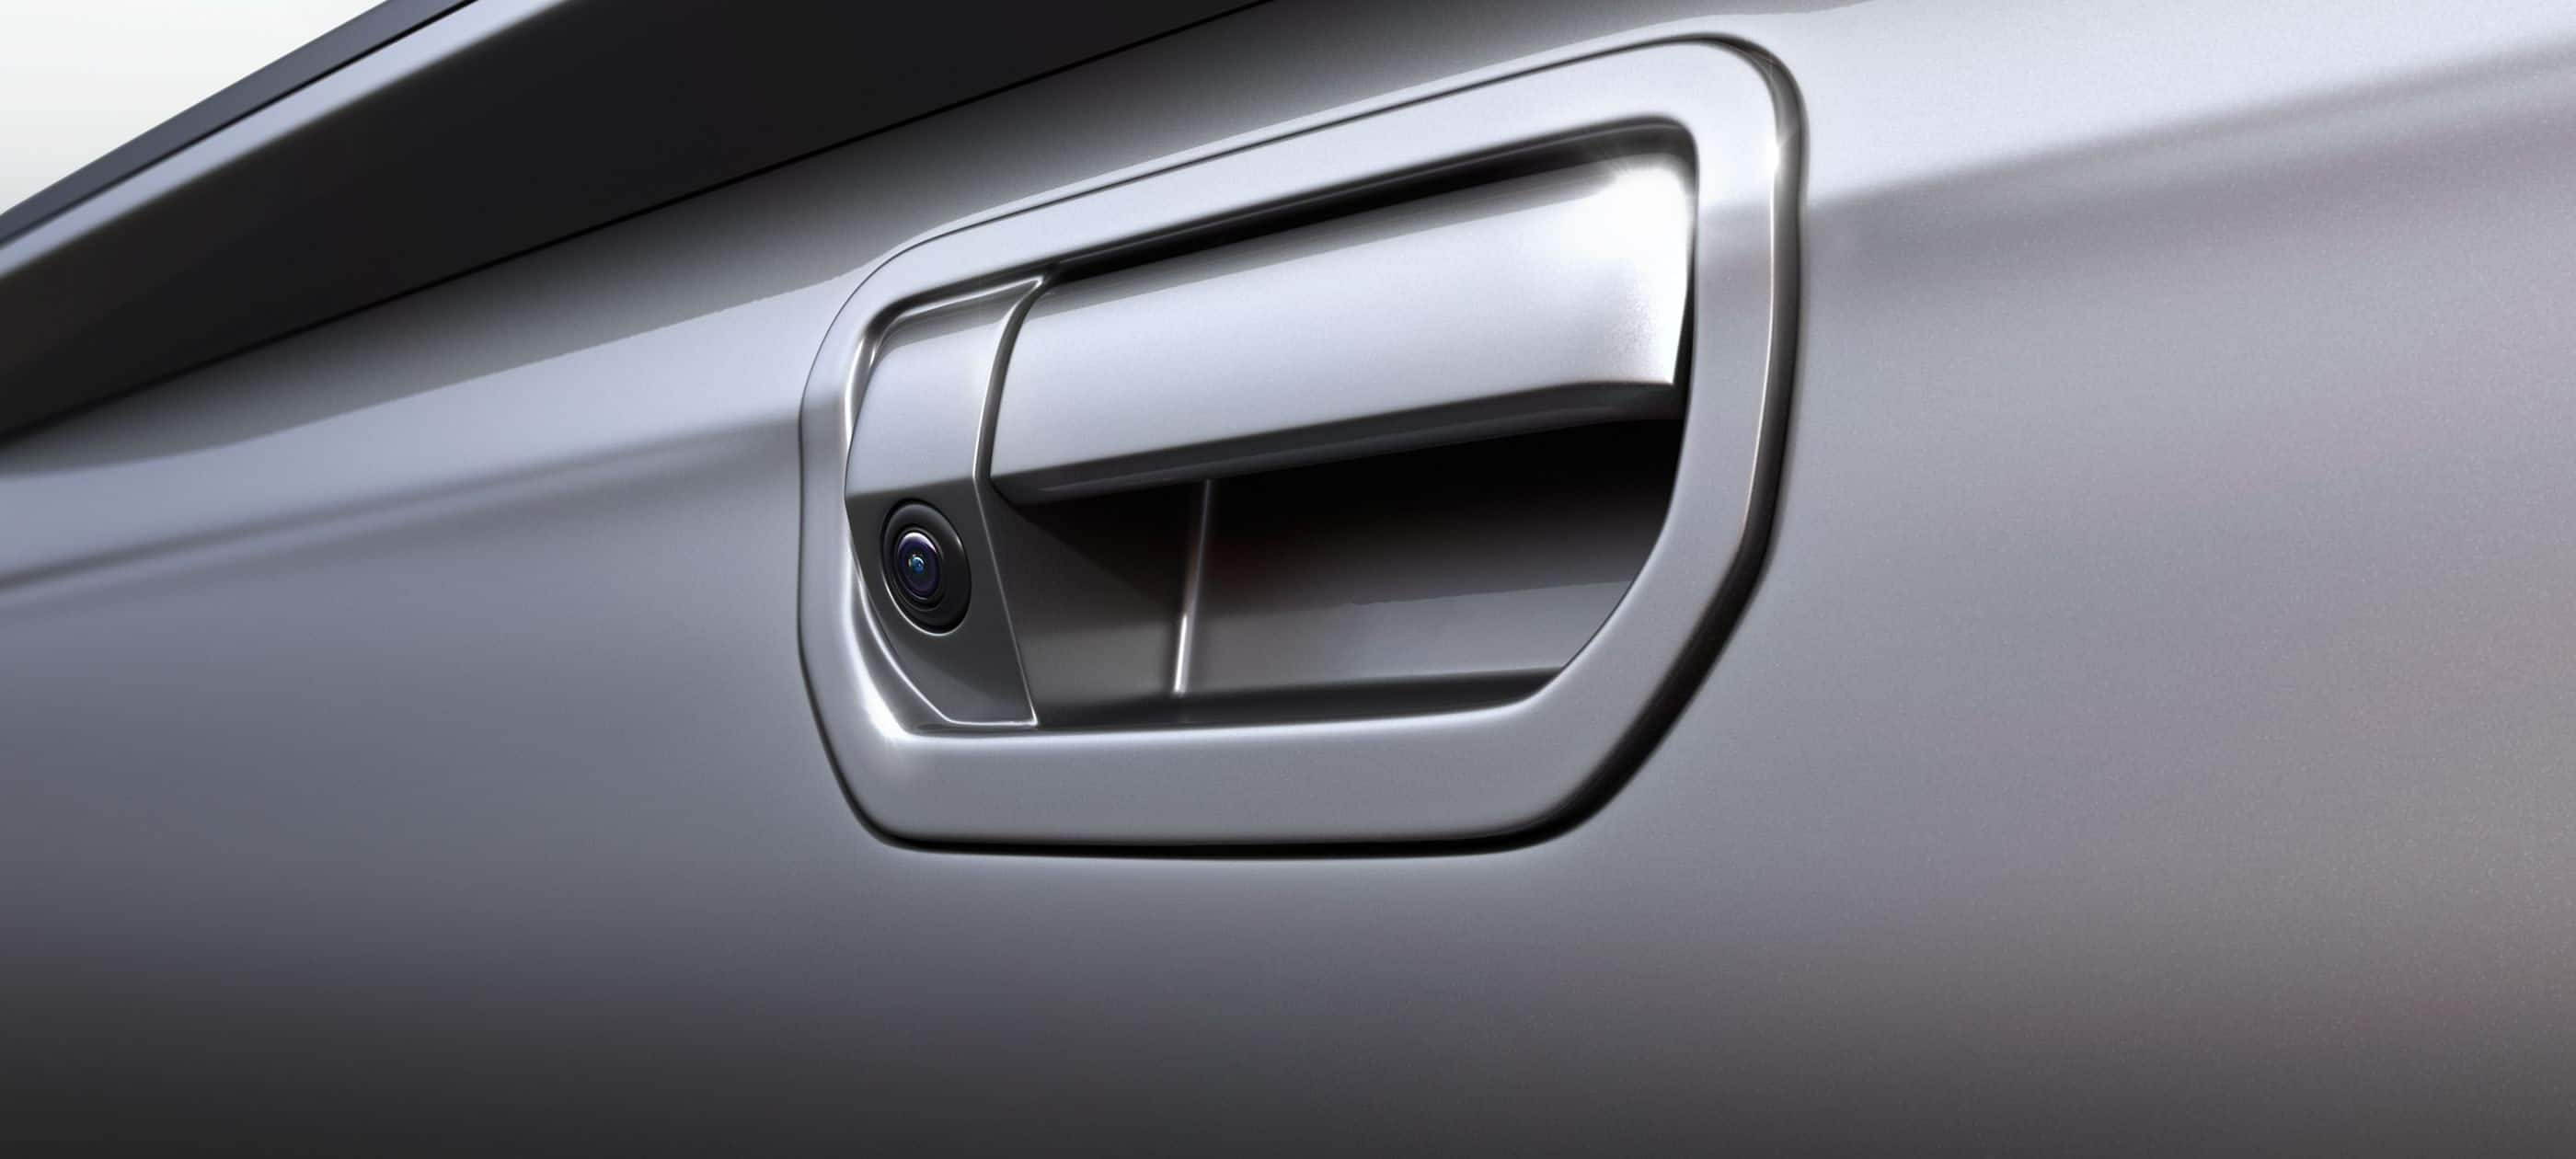 Detail of rearview camera on tailgate handle on 2019 Ridgeline.